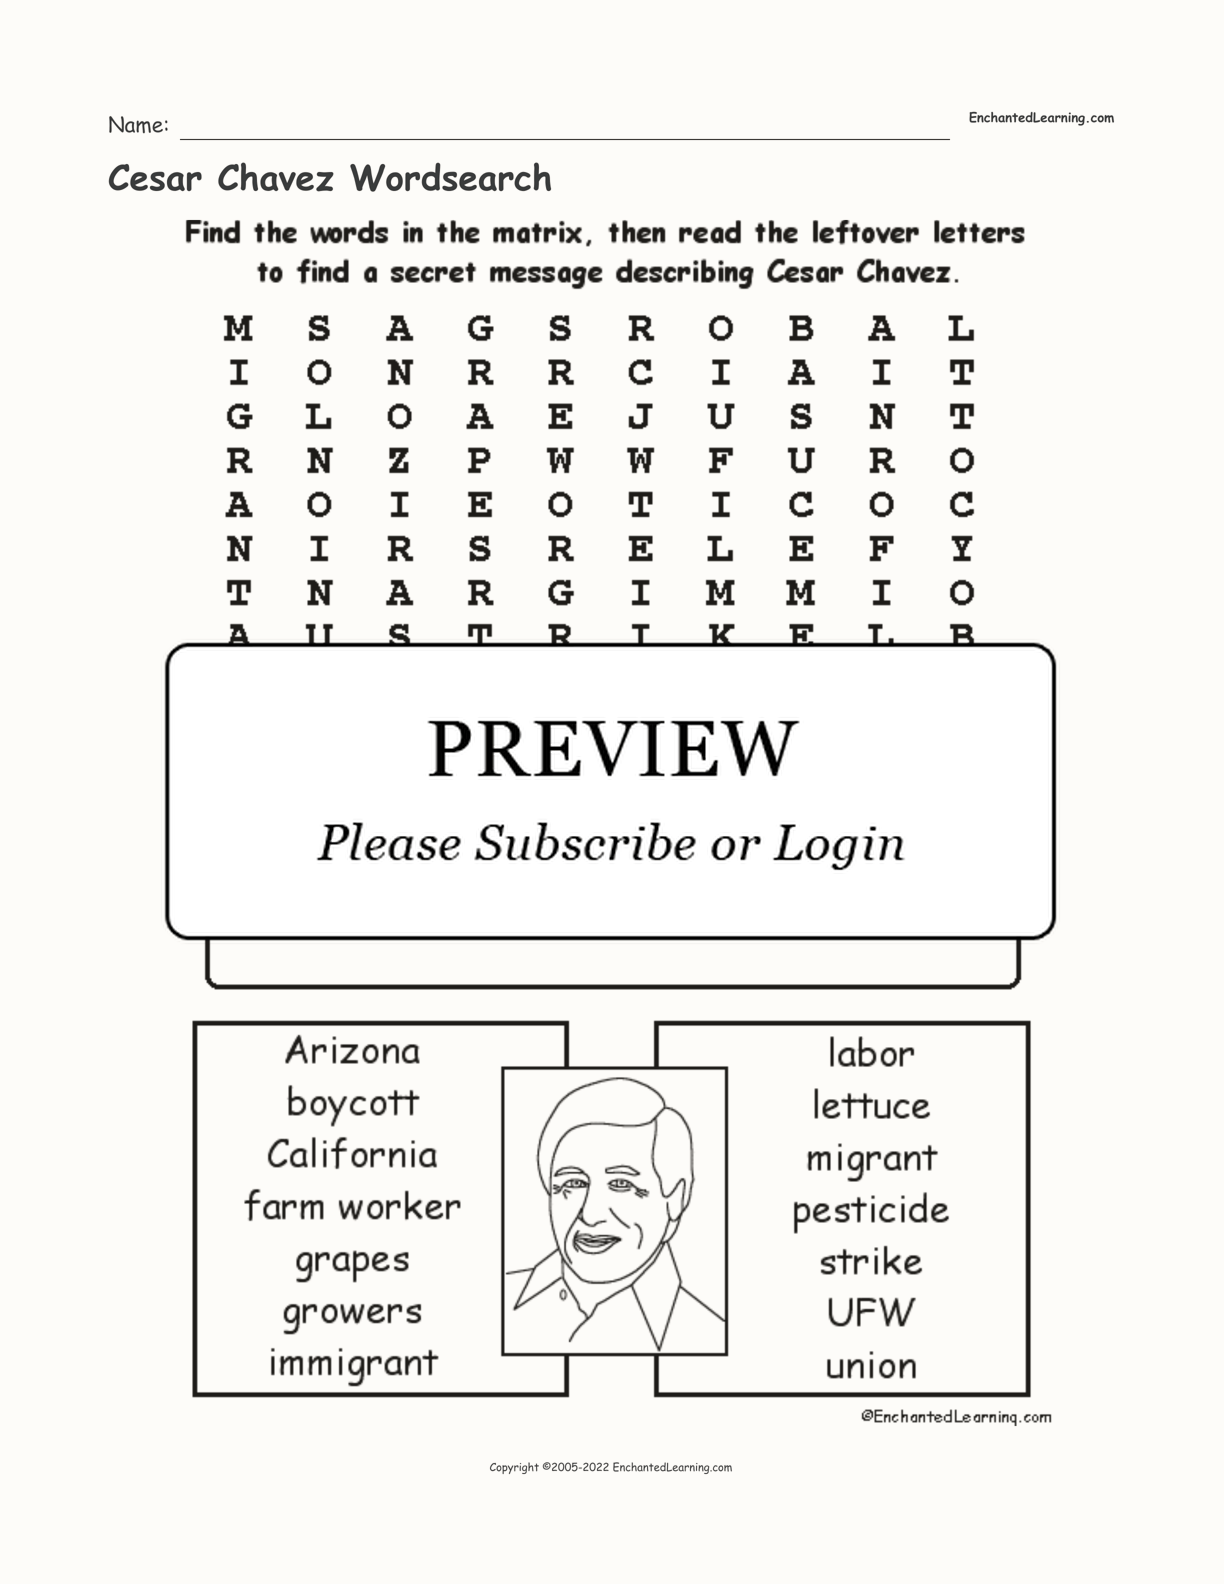 Cesar Chavez Wordsearch